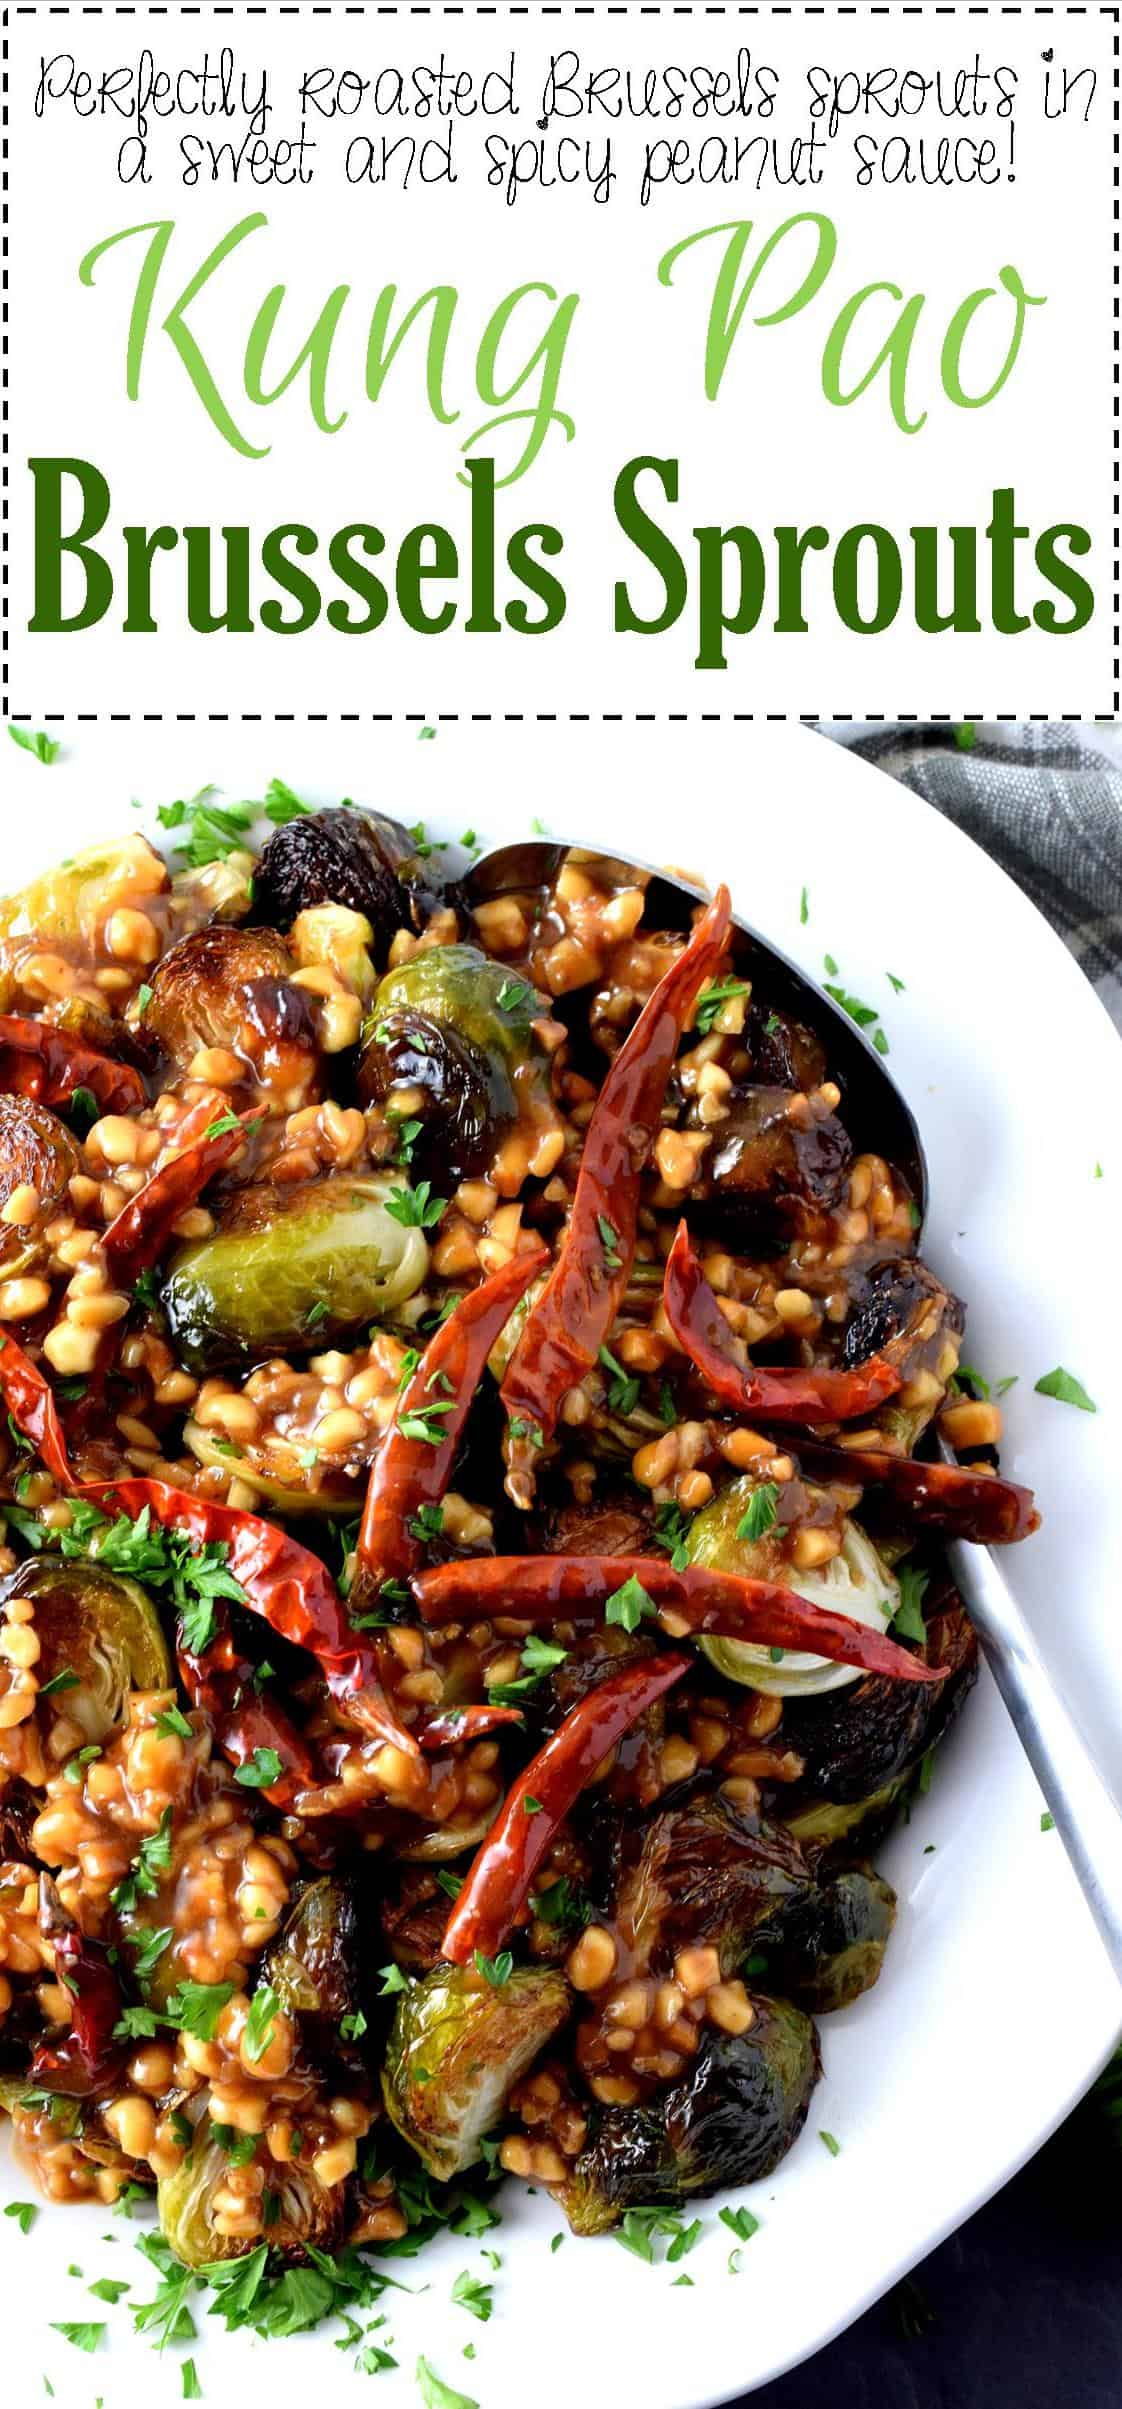 Kung Pao Brussels Sprouts - Lord Byron's Kitchen